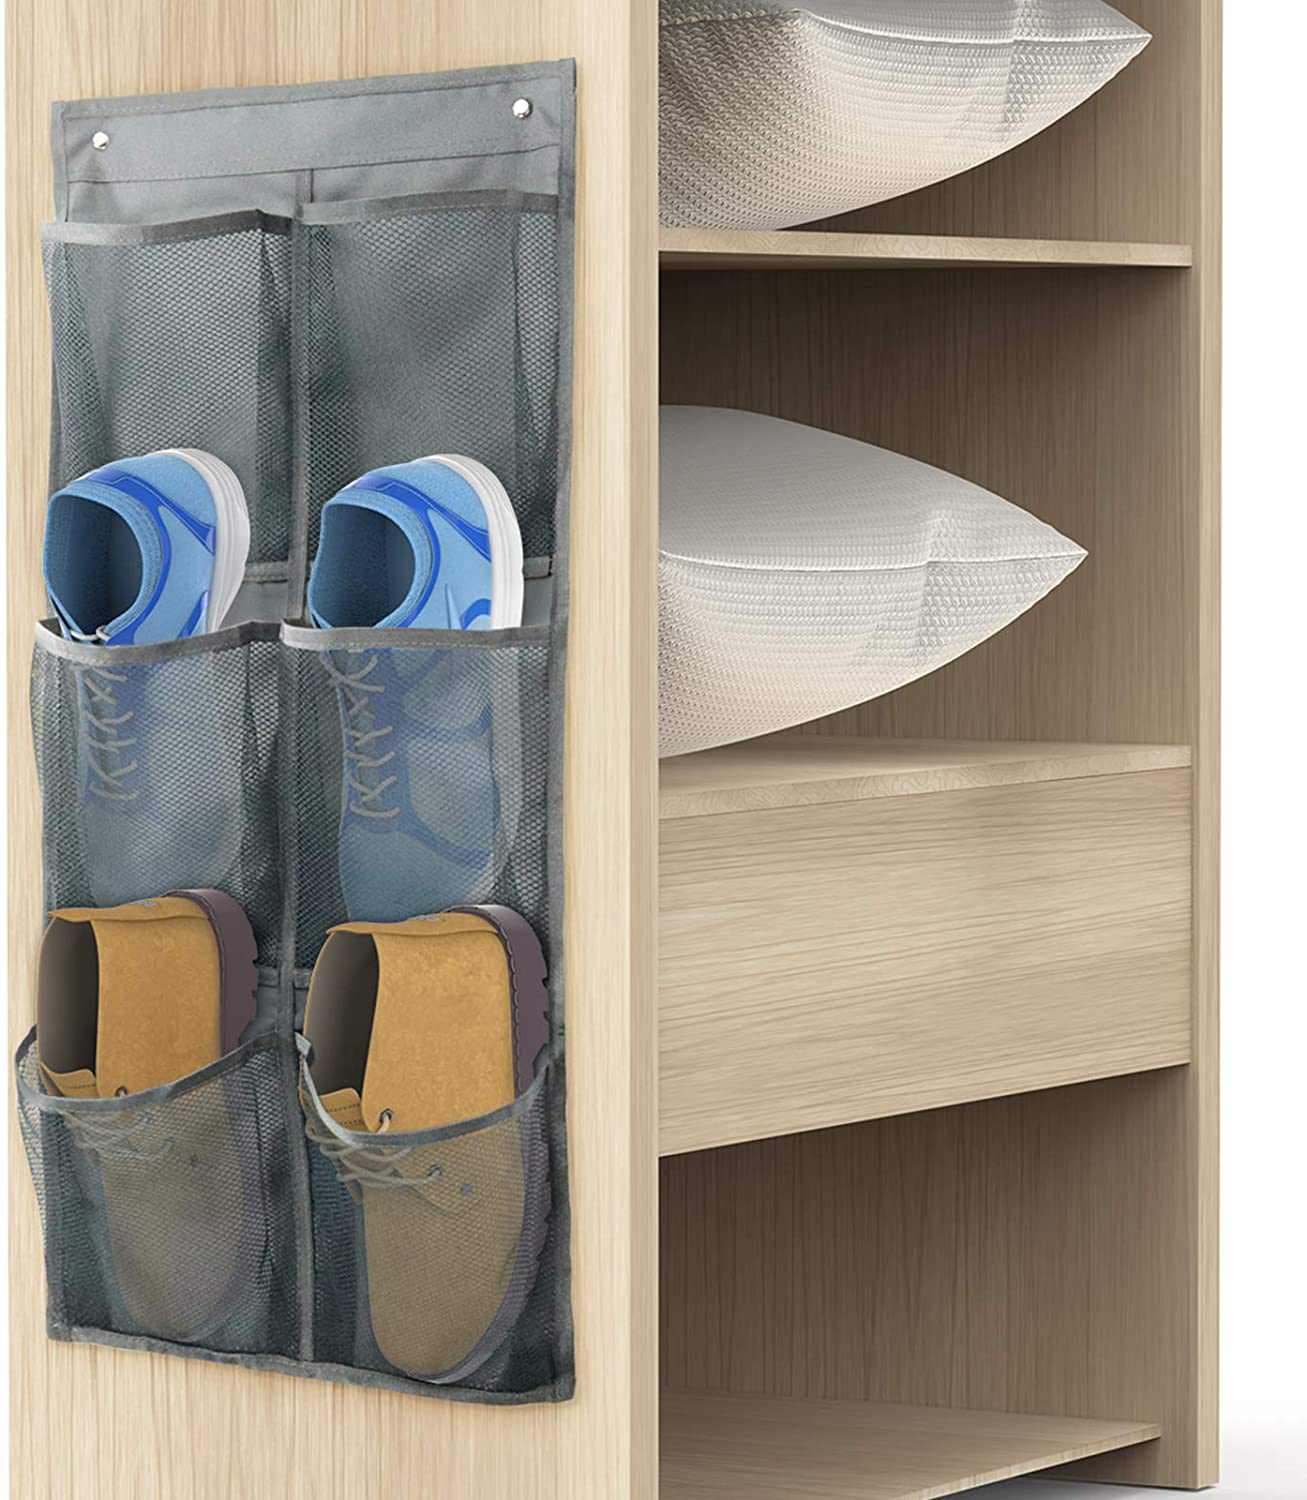 Yocice Wall Mounted Shoes Rack 1Pack/Can Store 3Pairs of Sneakers,with Sticky Hanging Mounts, Shoes Holder Storage Organizer Shelf,Door Shoe Hangers (SM06-Gray-1)